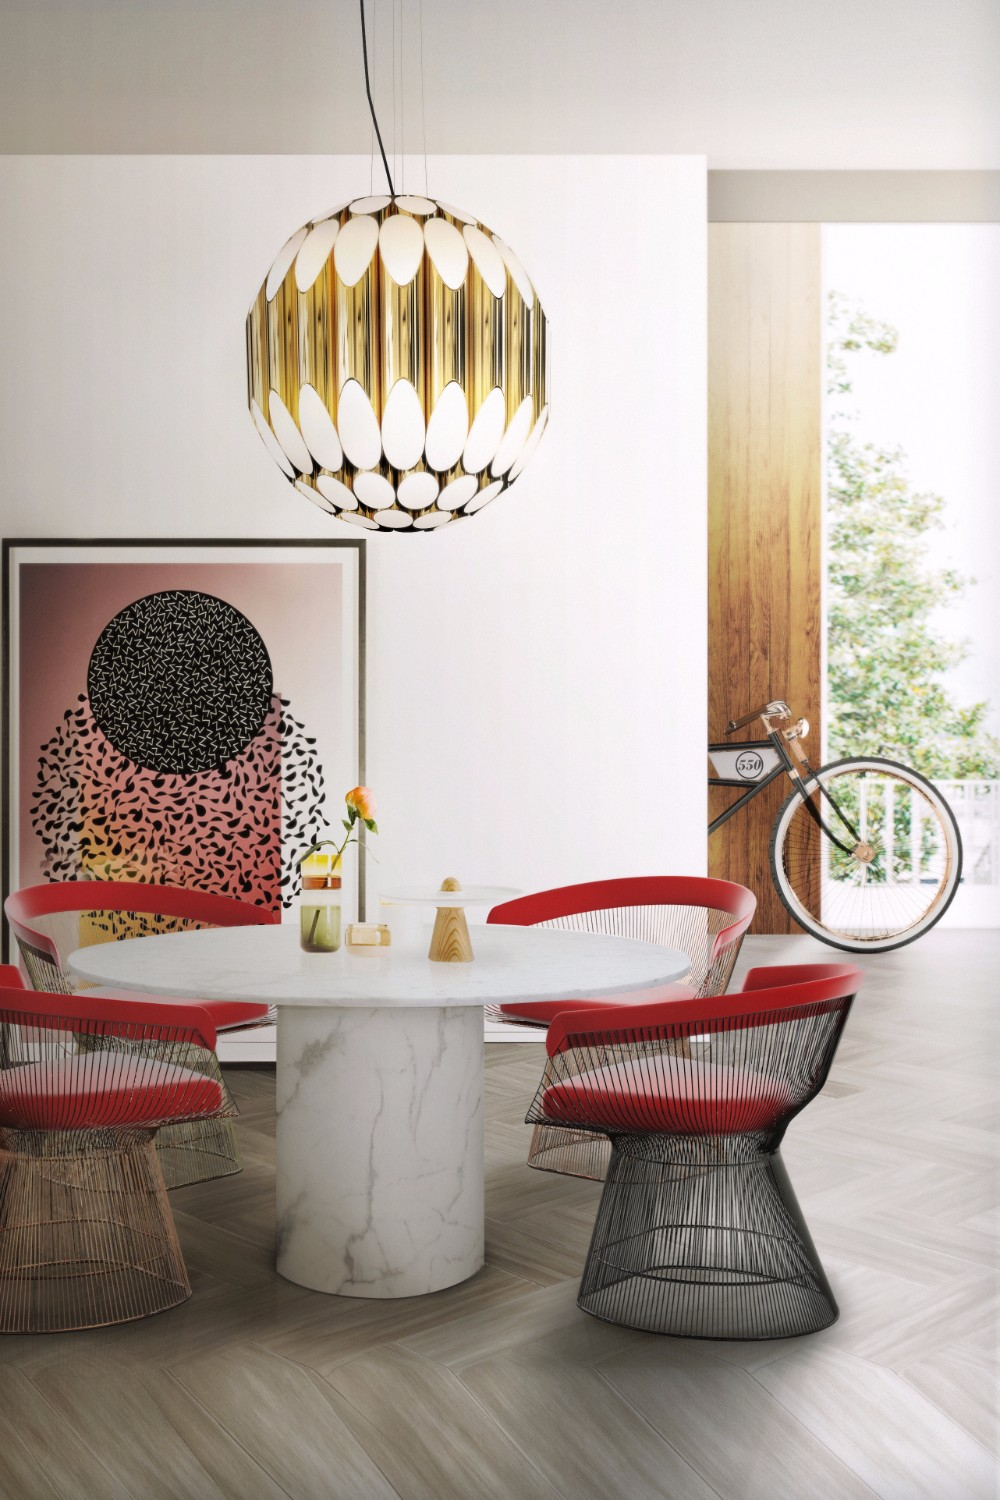 small dining table ideas 15 Inspiring Small Dining Table Ideas That You Gonna Love delightfull kravitz modern midcentury sphere suspension lamp 01